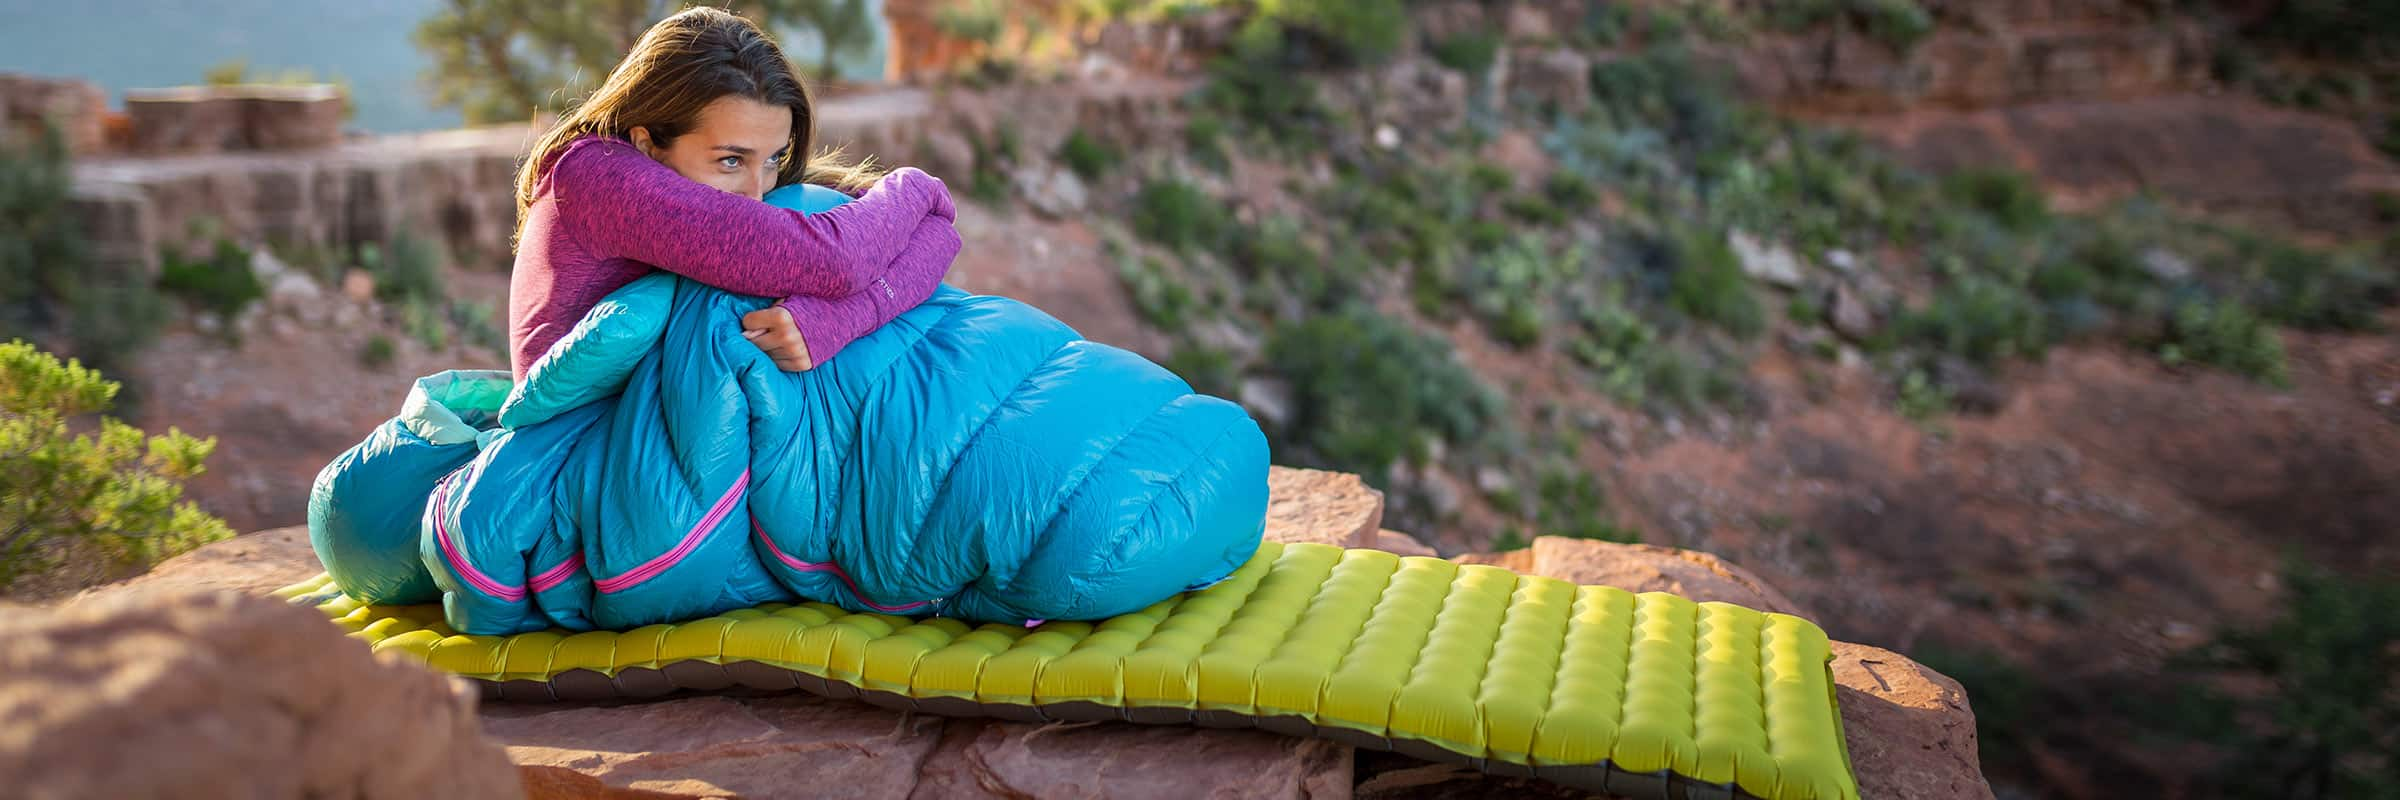 Big Agnes, Camping, Exped, NEMO Equipment, Sea to Summit, Therm-a-Rest, winter camping. How to Choose a Mattress for Camping